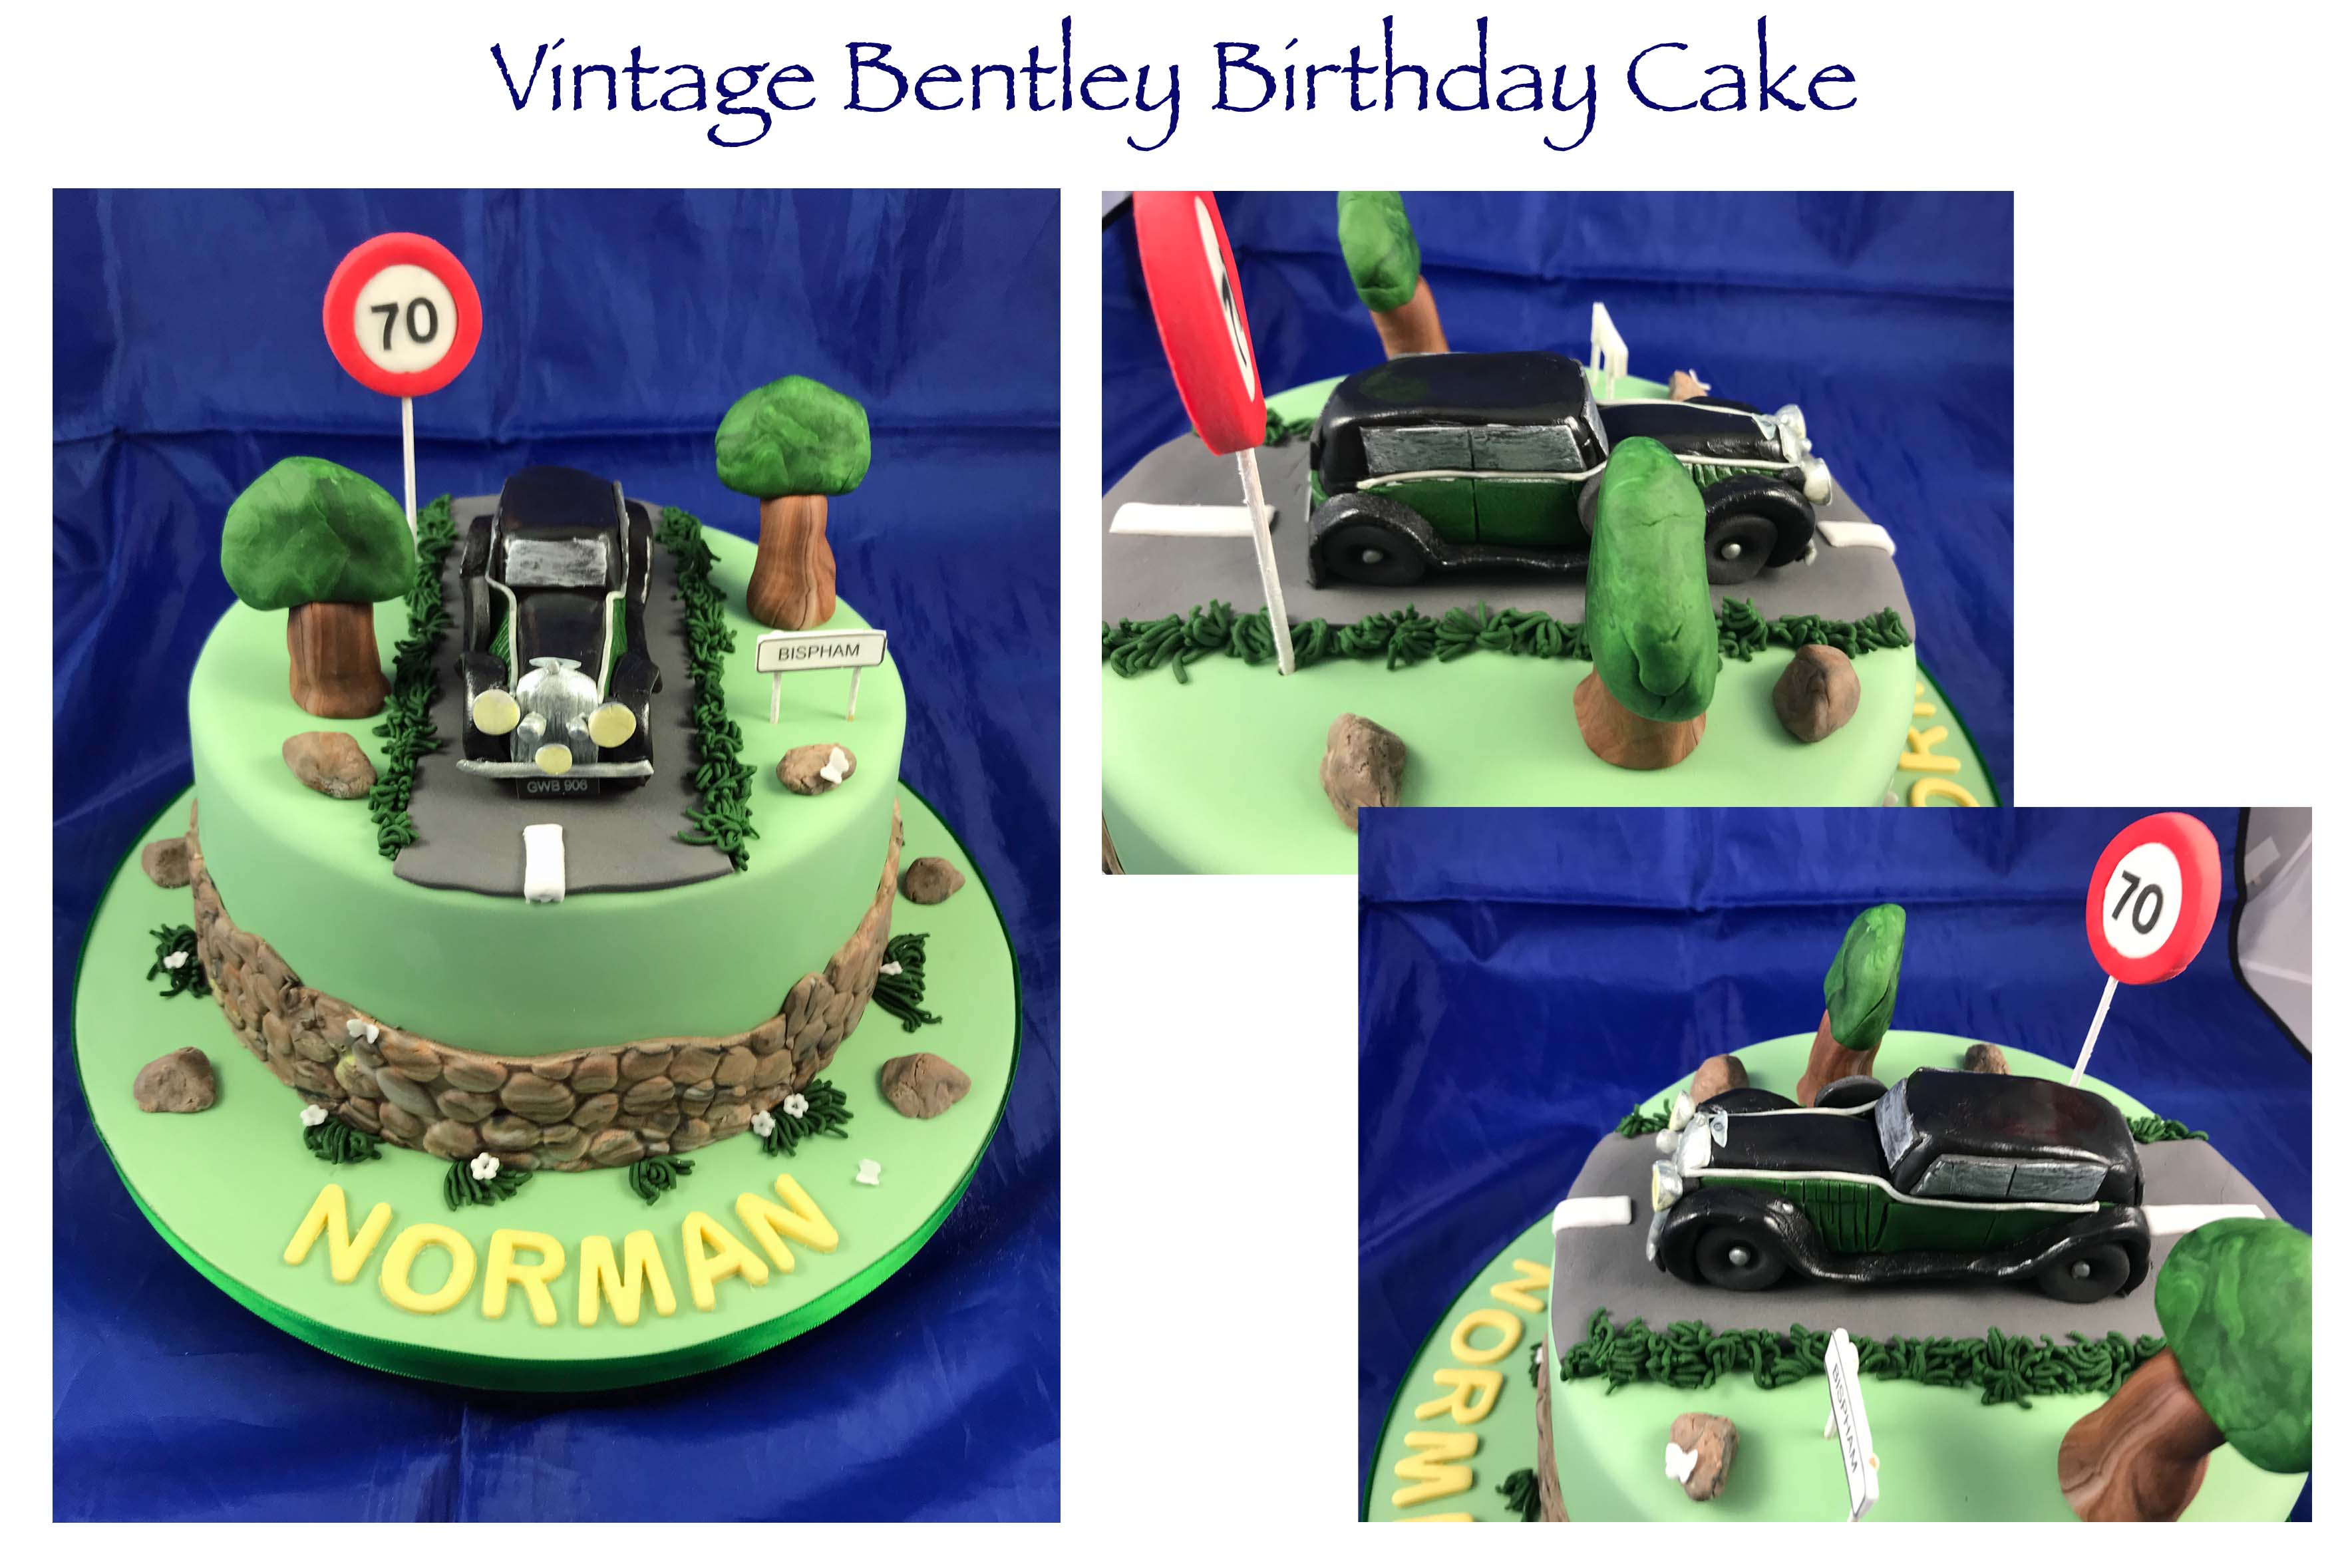 Vintage Bentley Birthday Cake_edited-1